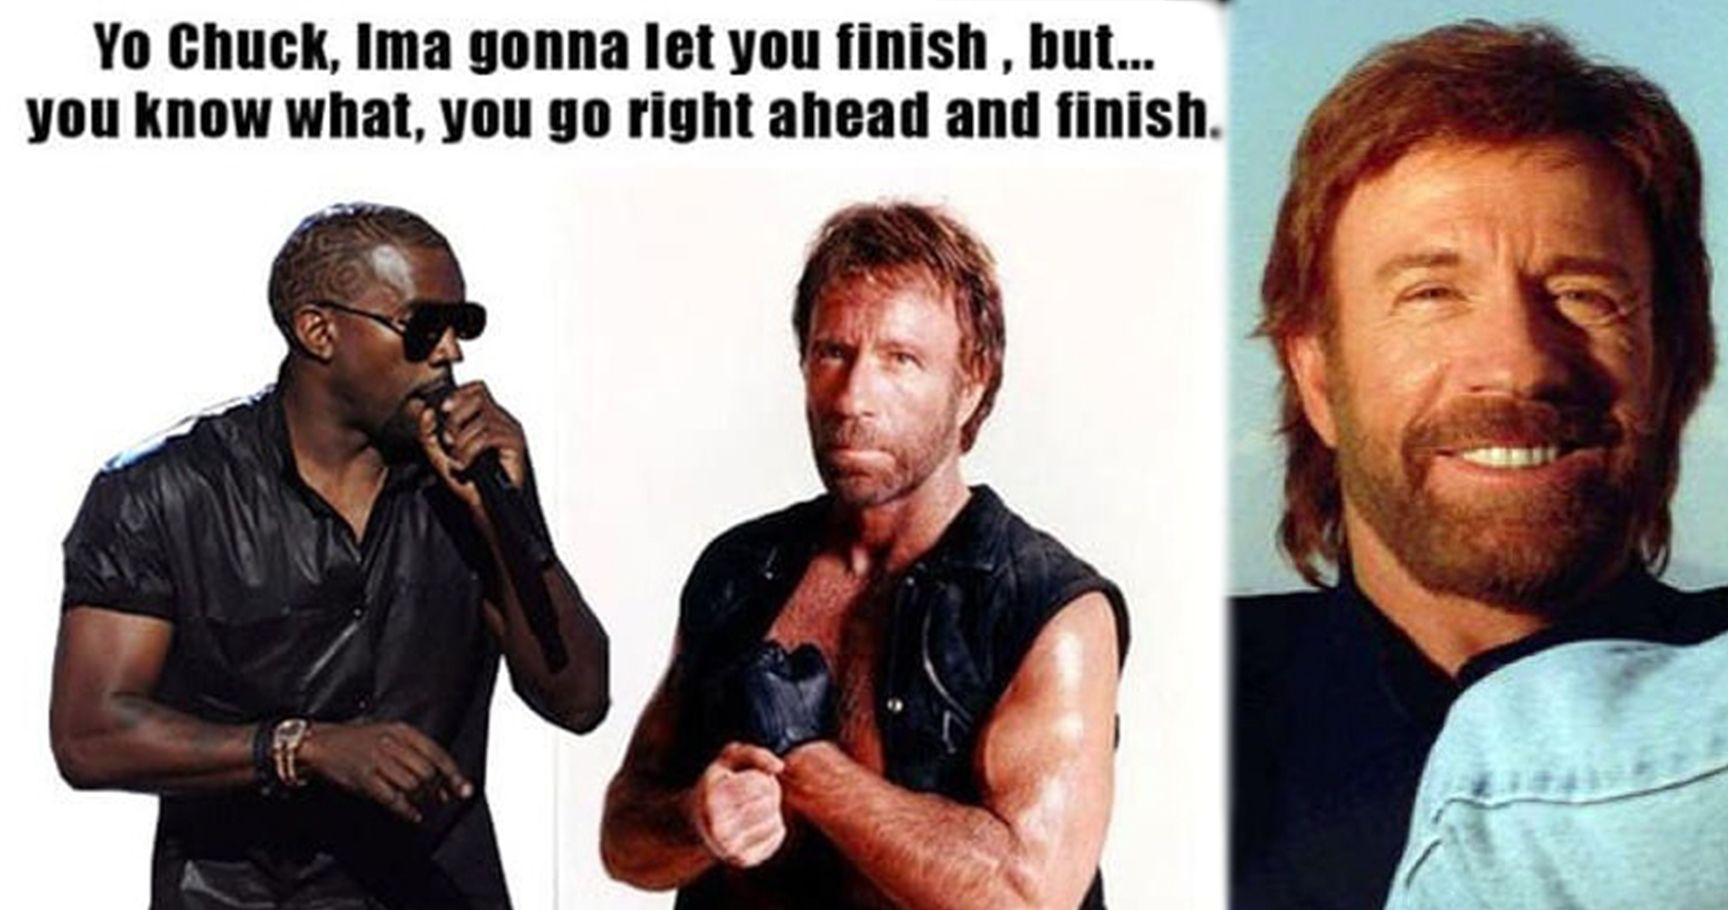 15 Of The Most Ridiculously Funny Chuck Norris Memes ...